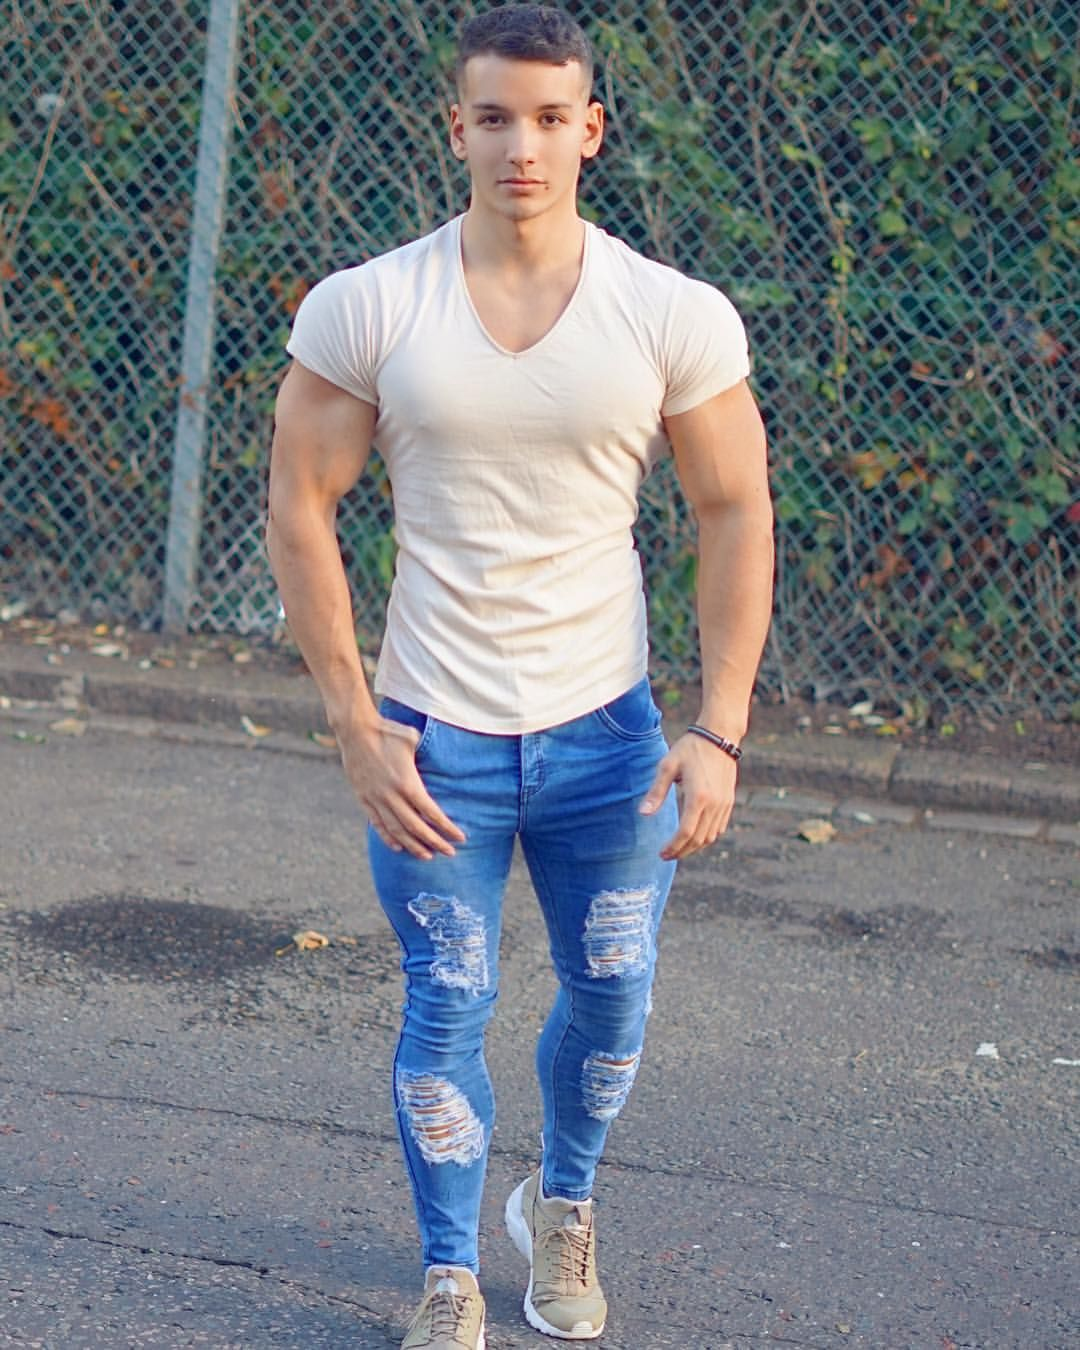 8 Hacks For Skinny Guys To Look Good (How to Dress If You're